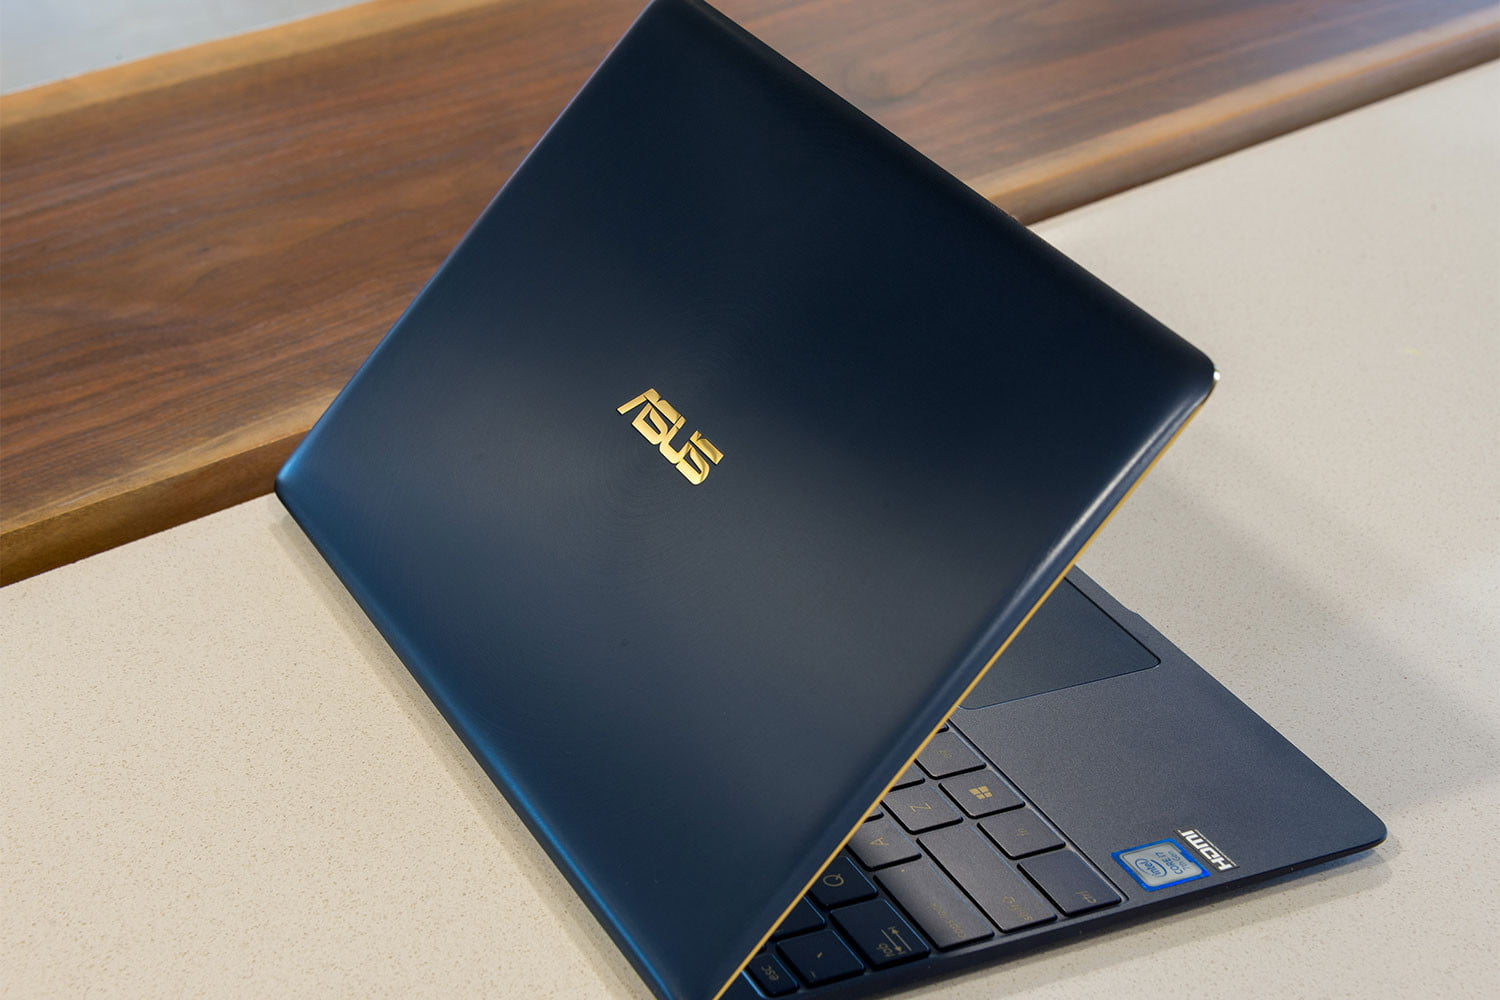 ASUS ZENBOOK 3 UX390UA WINDOWS 8 X64 DRIVER DOWNLOAD